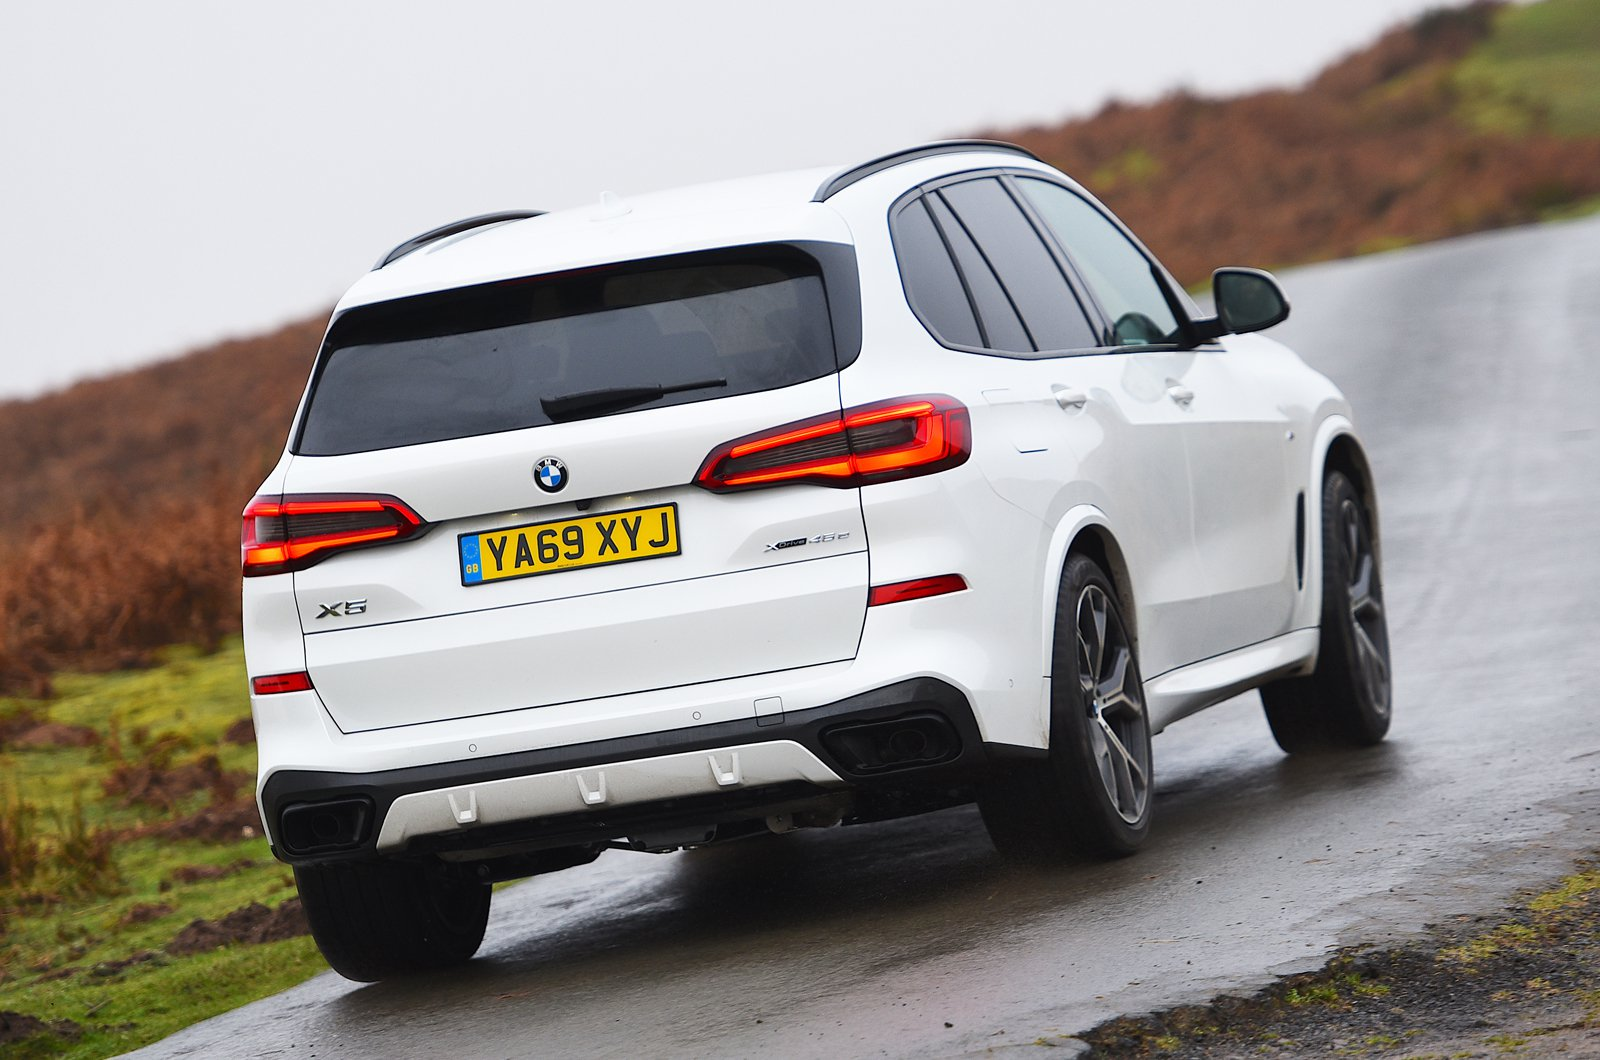 BMW X5 45e rear cornering - 69-plate car